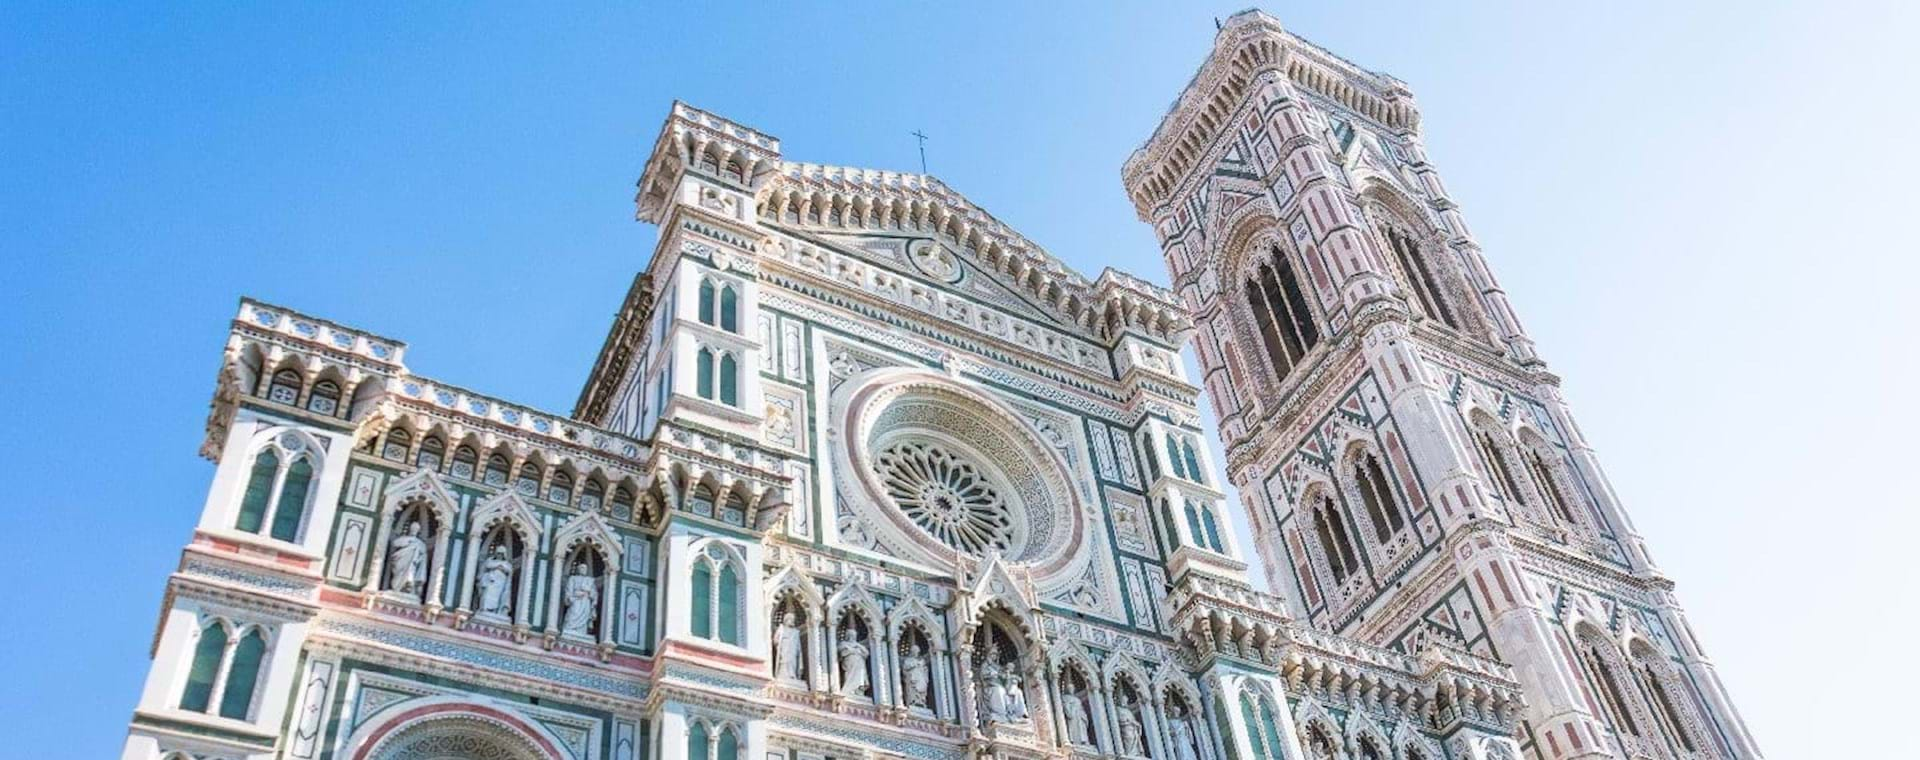 Day Trip: Skip-the-Line Access to Michelangelo's David in Florence from Rome